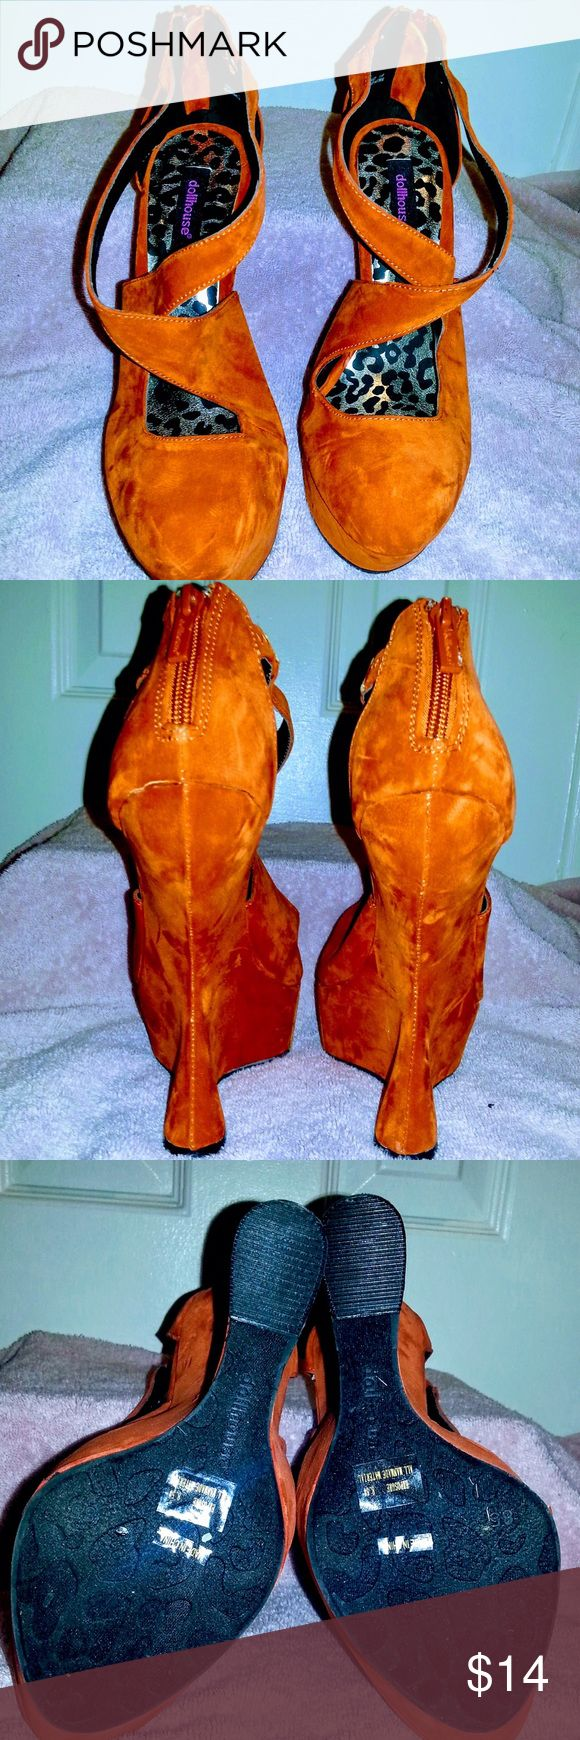 """Cute Sz 8.5 Dollhouse """"Exposure"""" wedge orange New! Give a toast to wonderful style in the Dollhouse """"Exposure"""" wedge pumps. The upper fabric gets a chic but comfortable lift from the wedge heel. Features peep toe strappy faux suede top and wedge heel. The man made sole provides enhanced comfort and grip you can rely on.  Color: orange Width: Medium Style: Platform Material: Faux suede upper and man-made outsole Toe shape: Round Heel height/type: 6-inches Dollhouse Shoes Wedges"""